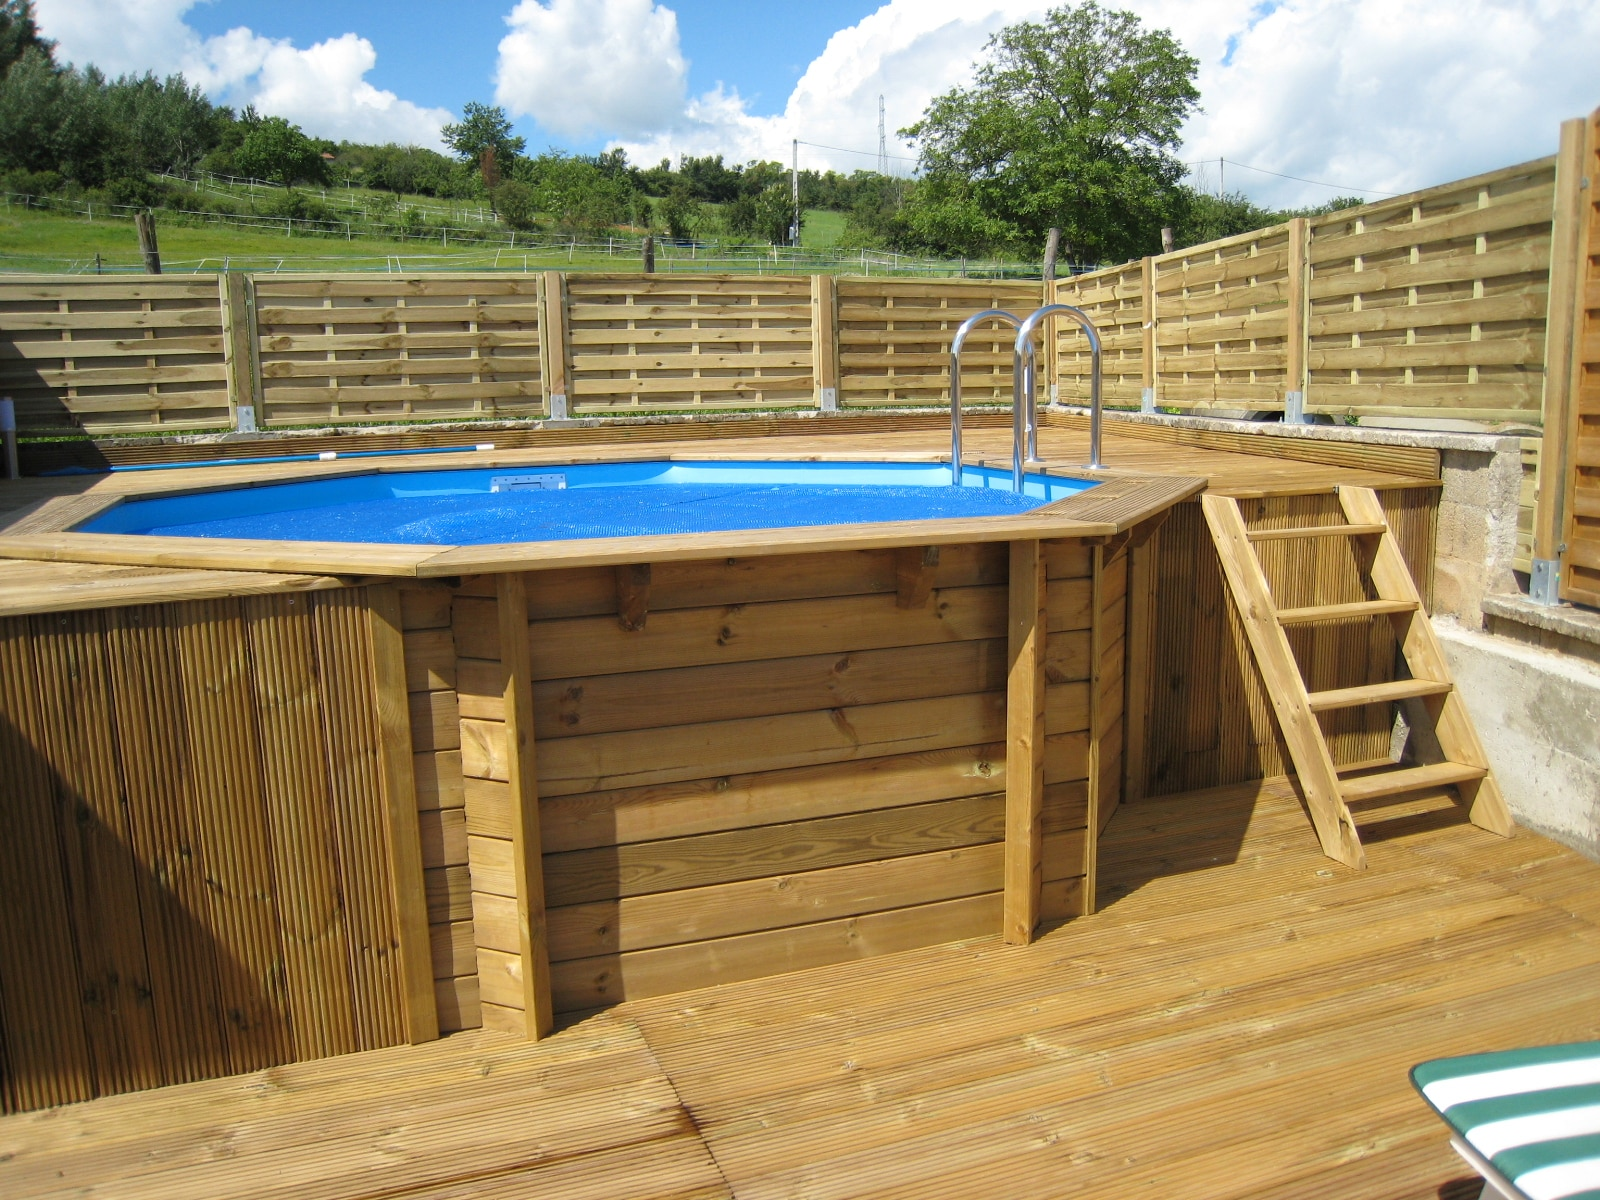 Comment monter une piscine en bois for Piscine demontable bois